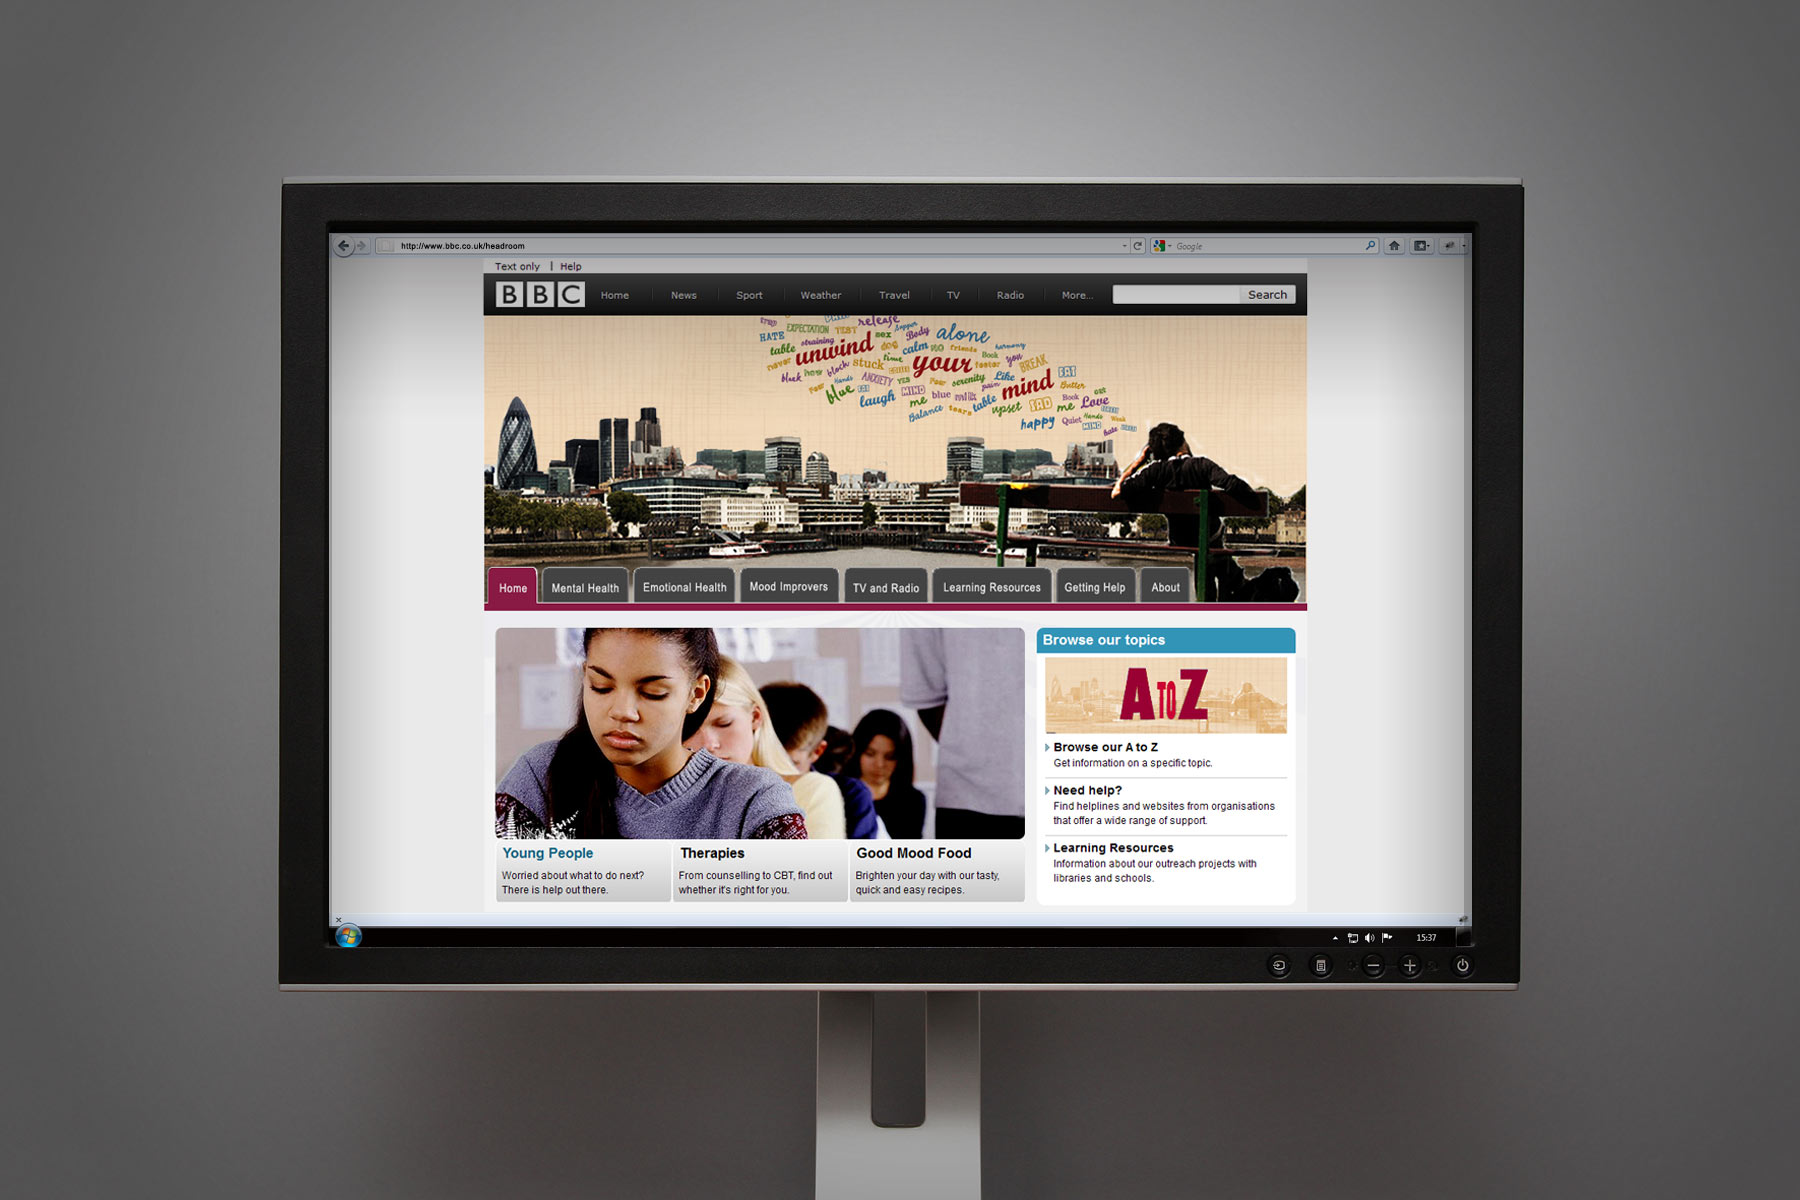 The guidelines show the look and feel adapted to the online environment.